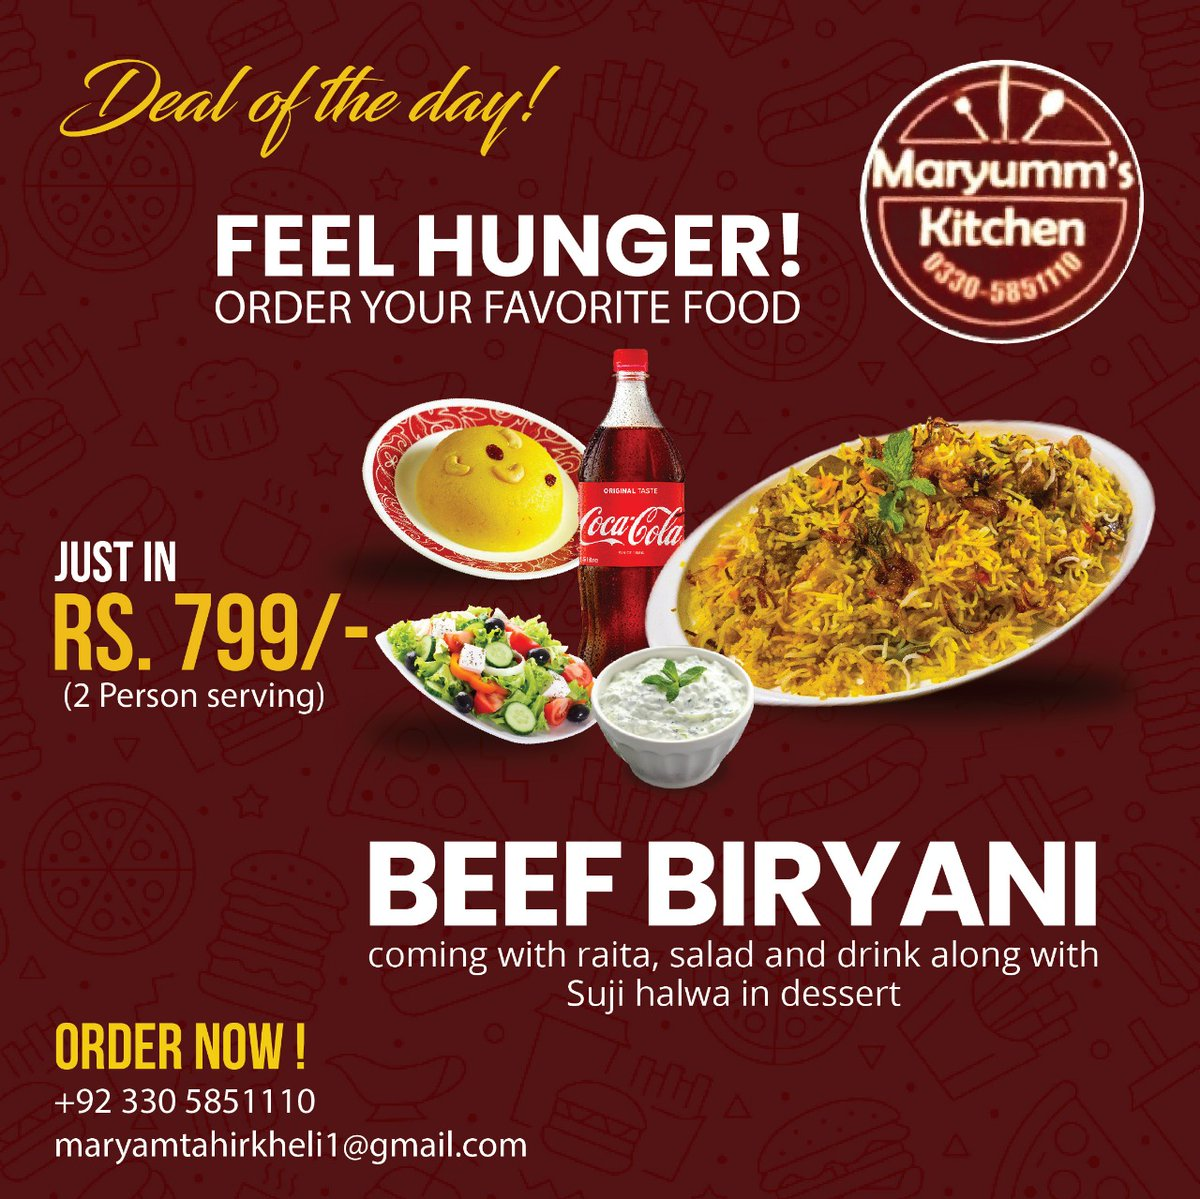 Deal of the day valid till tmrw lunch! Beef biryani, raita and salad with a bottle of drink and suji halwa in dessert 😋 Don't wait order now ‼️ . . .  #foodiesofinstagram #eats #instacool #foodstagram #instafood #foodpic #foodgasm #delicious #foodoftheday #foodpics #Food